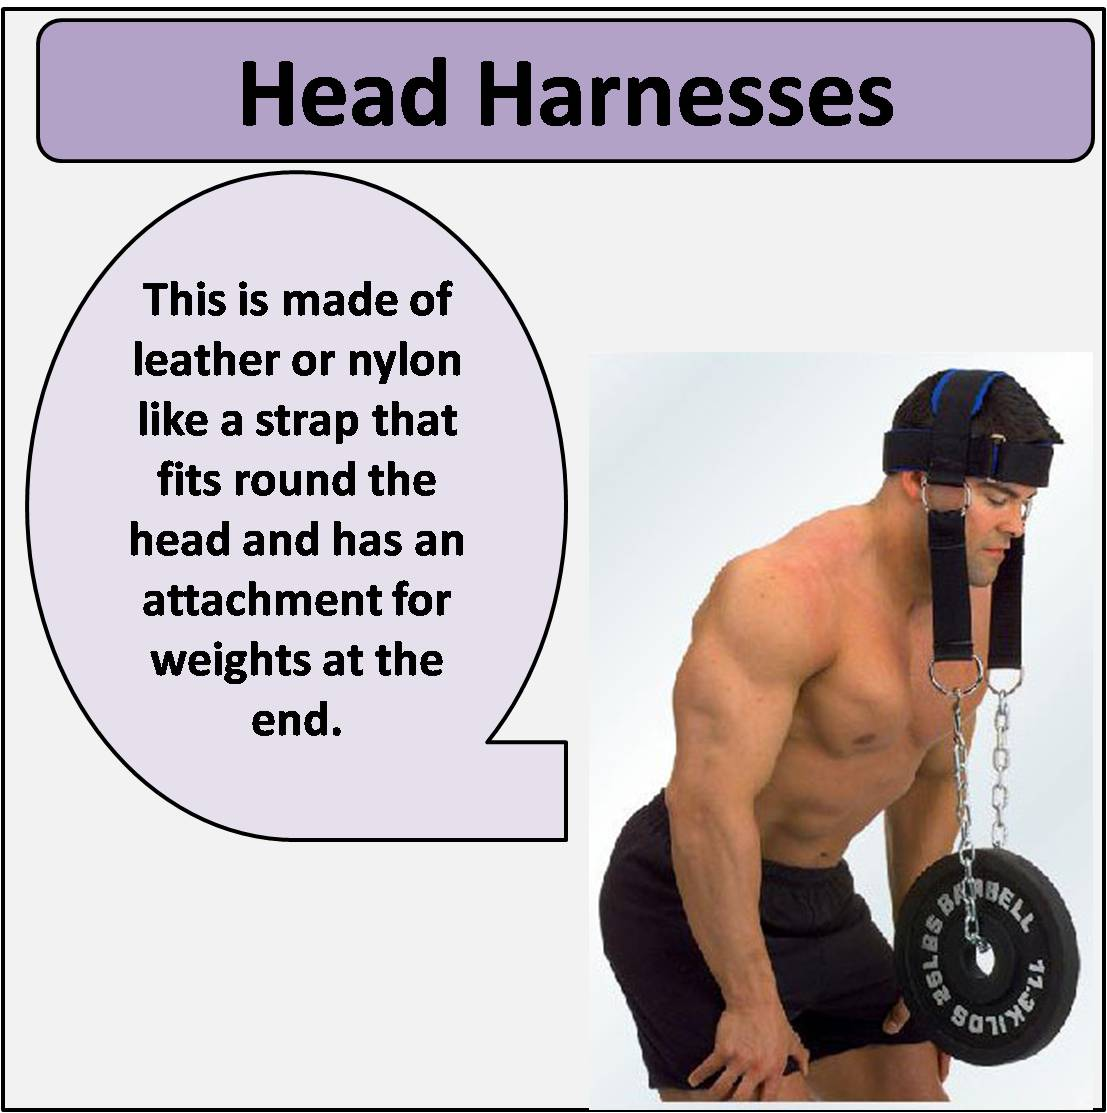 Head Harnesses